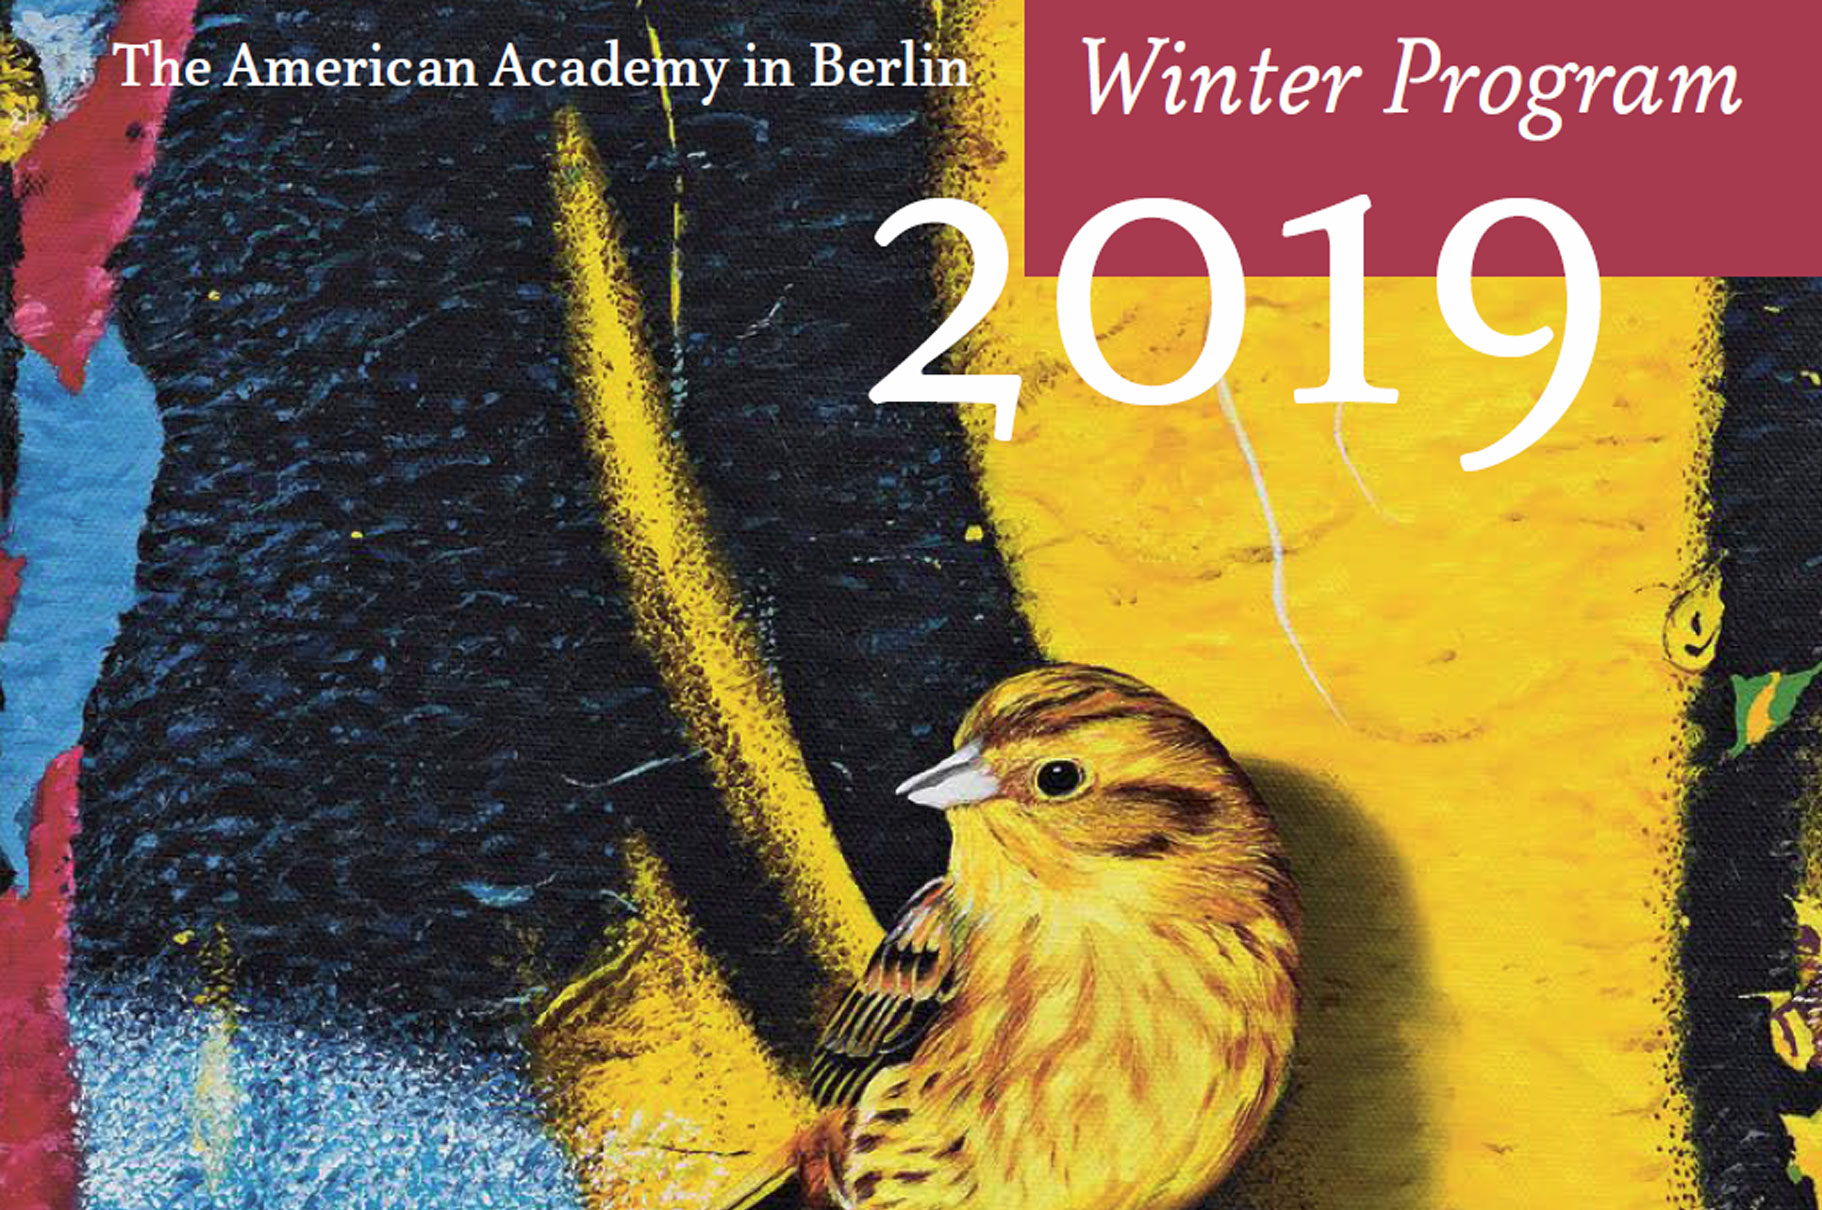 The Winter 2019 Program